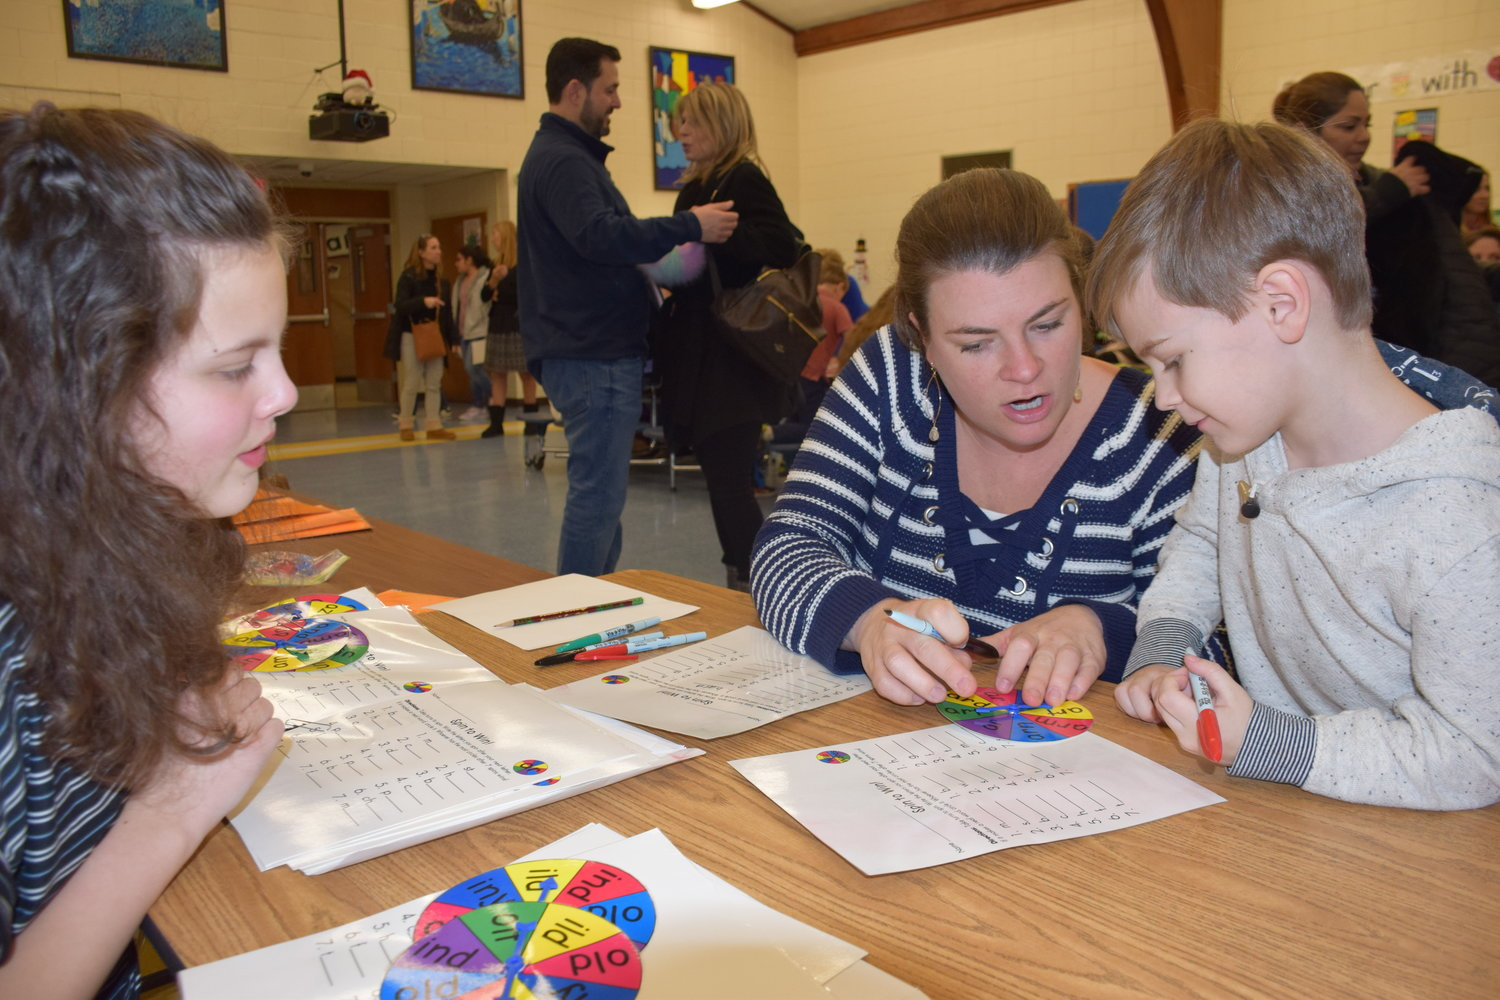 Middle School student Abigail Maselli, left, said she enjoyed teaching her game to parents and students, who included Rebecca Carfora and her son, Alfred, at Bayville Primary's Family Math/ELA Night.